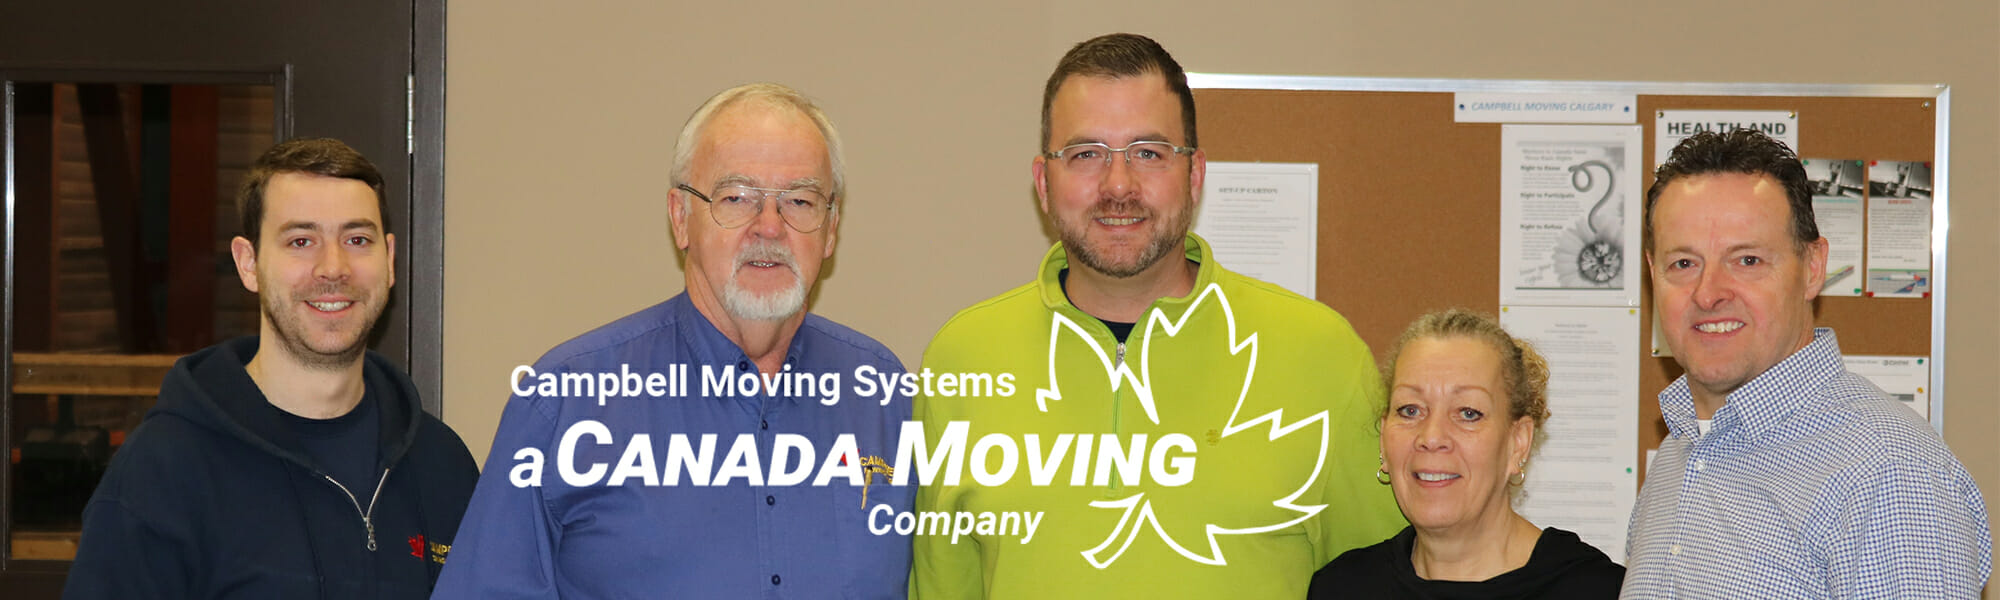 Cindy Clarke Campbell Moving System Crew - (A Canada Moving Company)